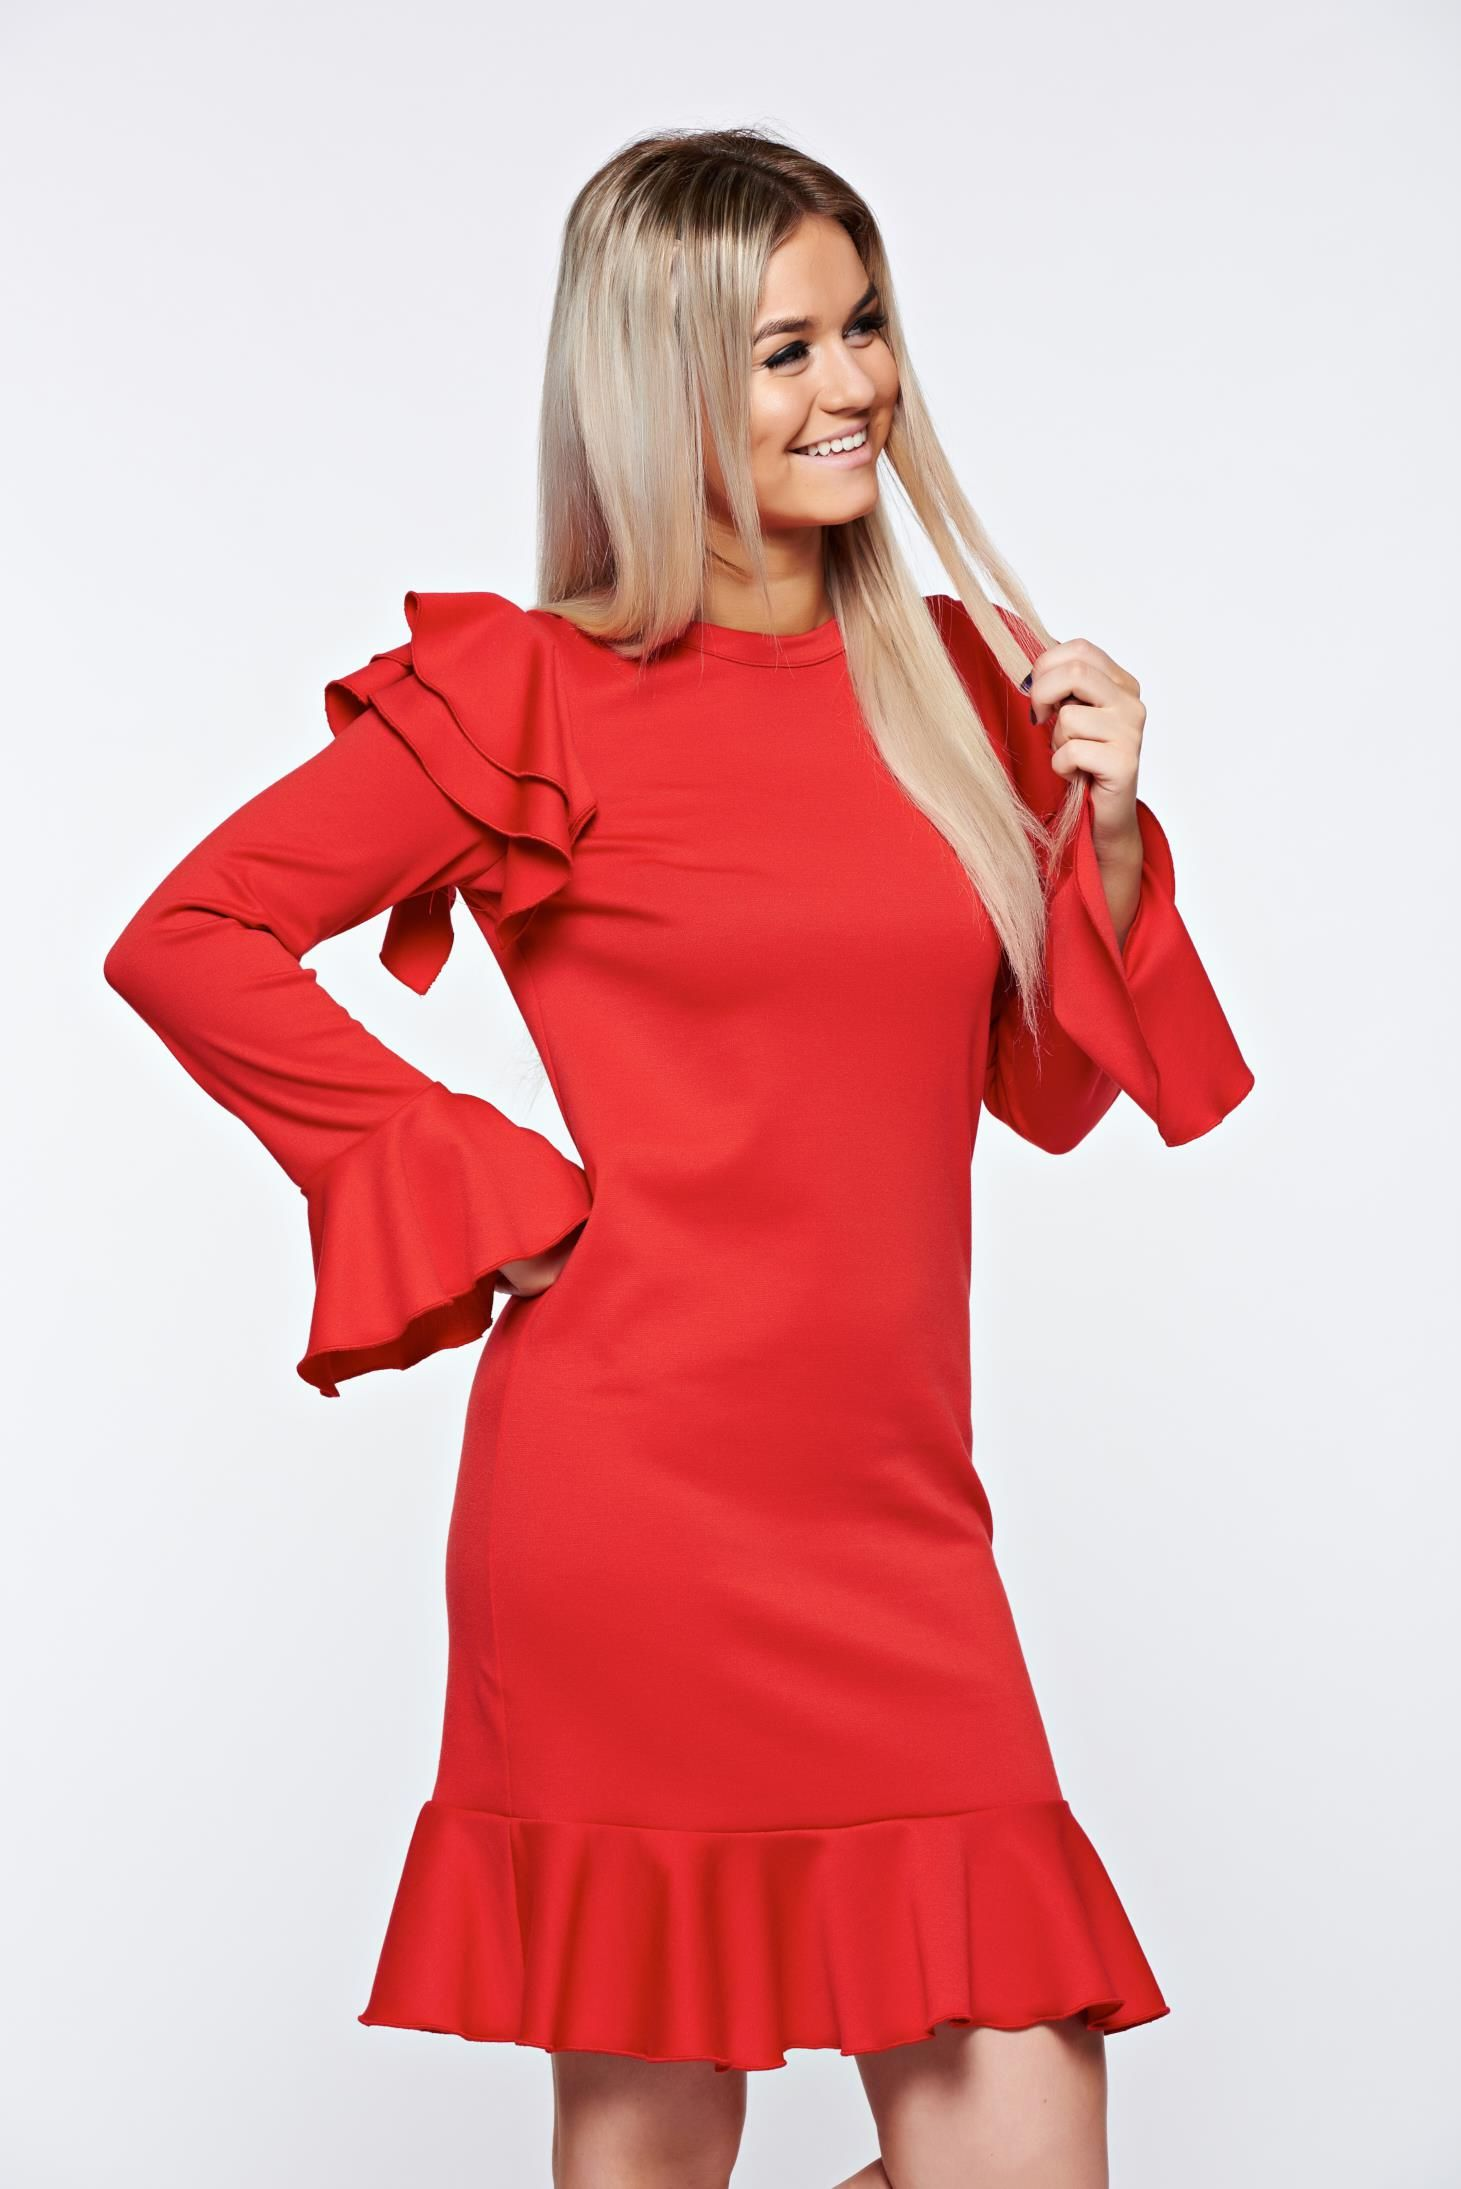 With ruffle details with easy cut elegant with ruffle details easy